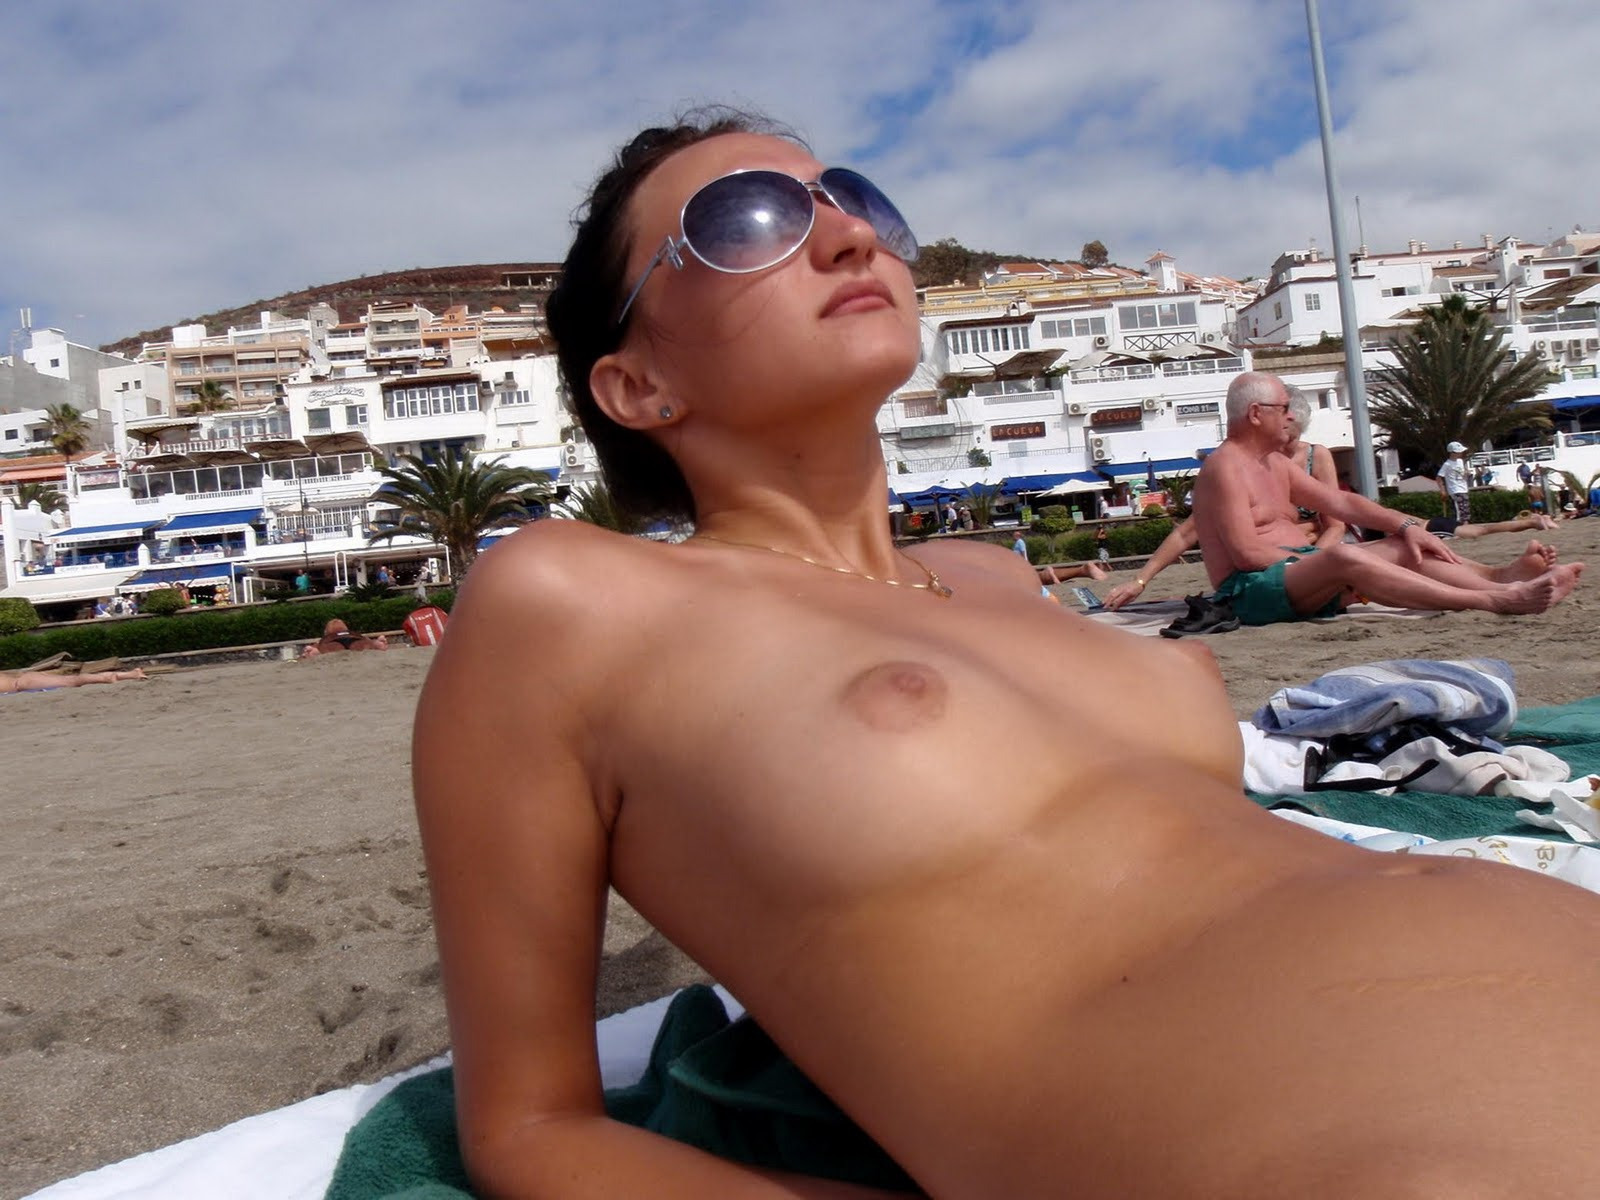 European nude beaches